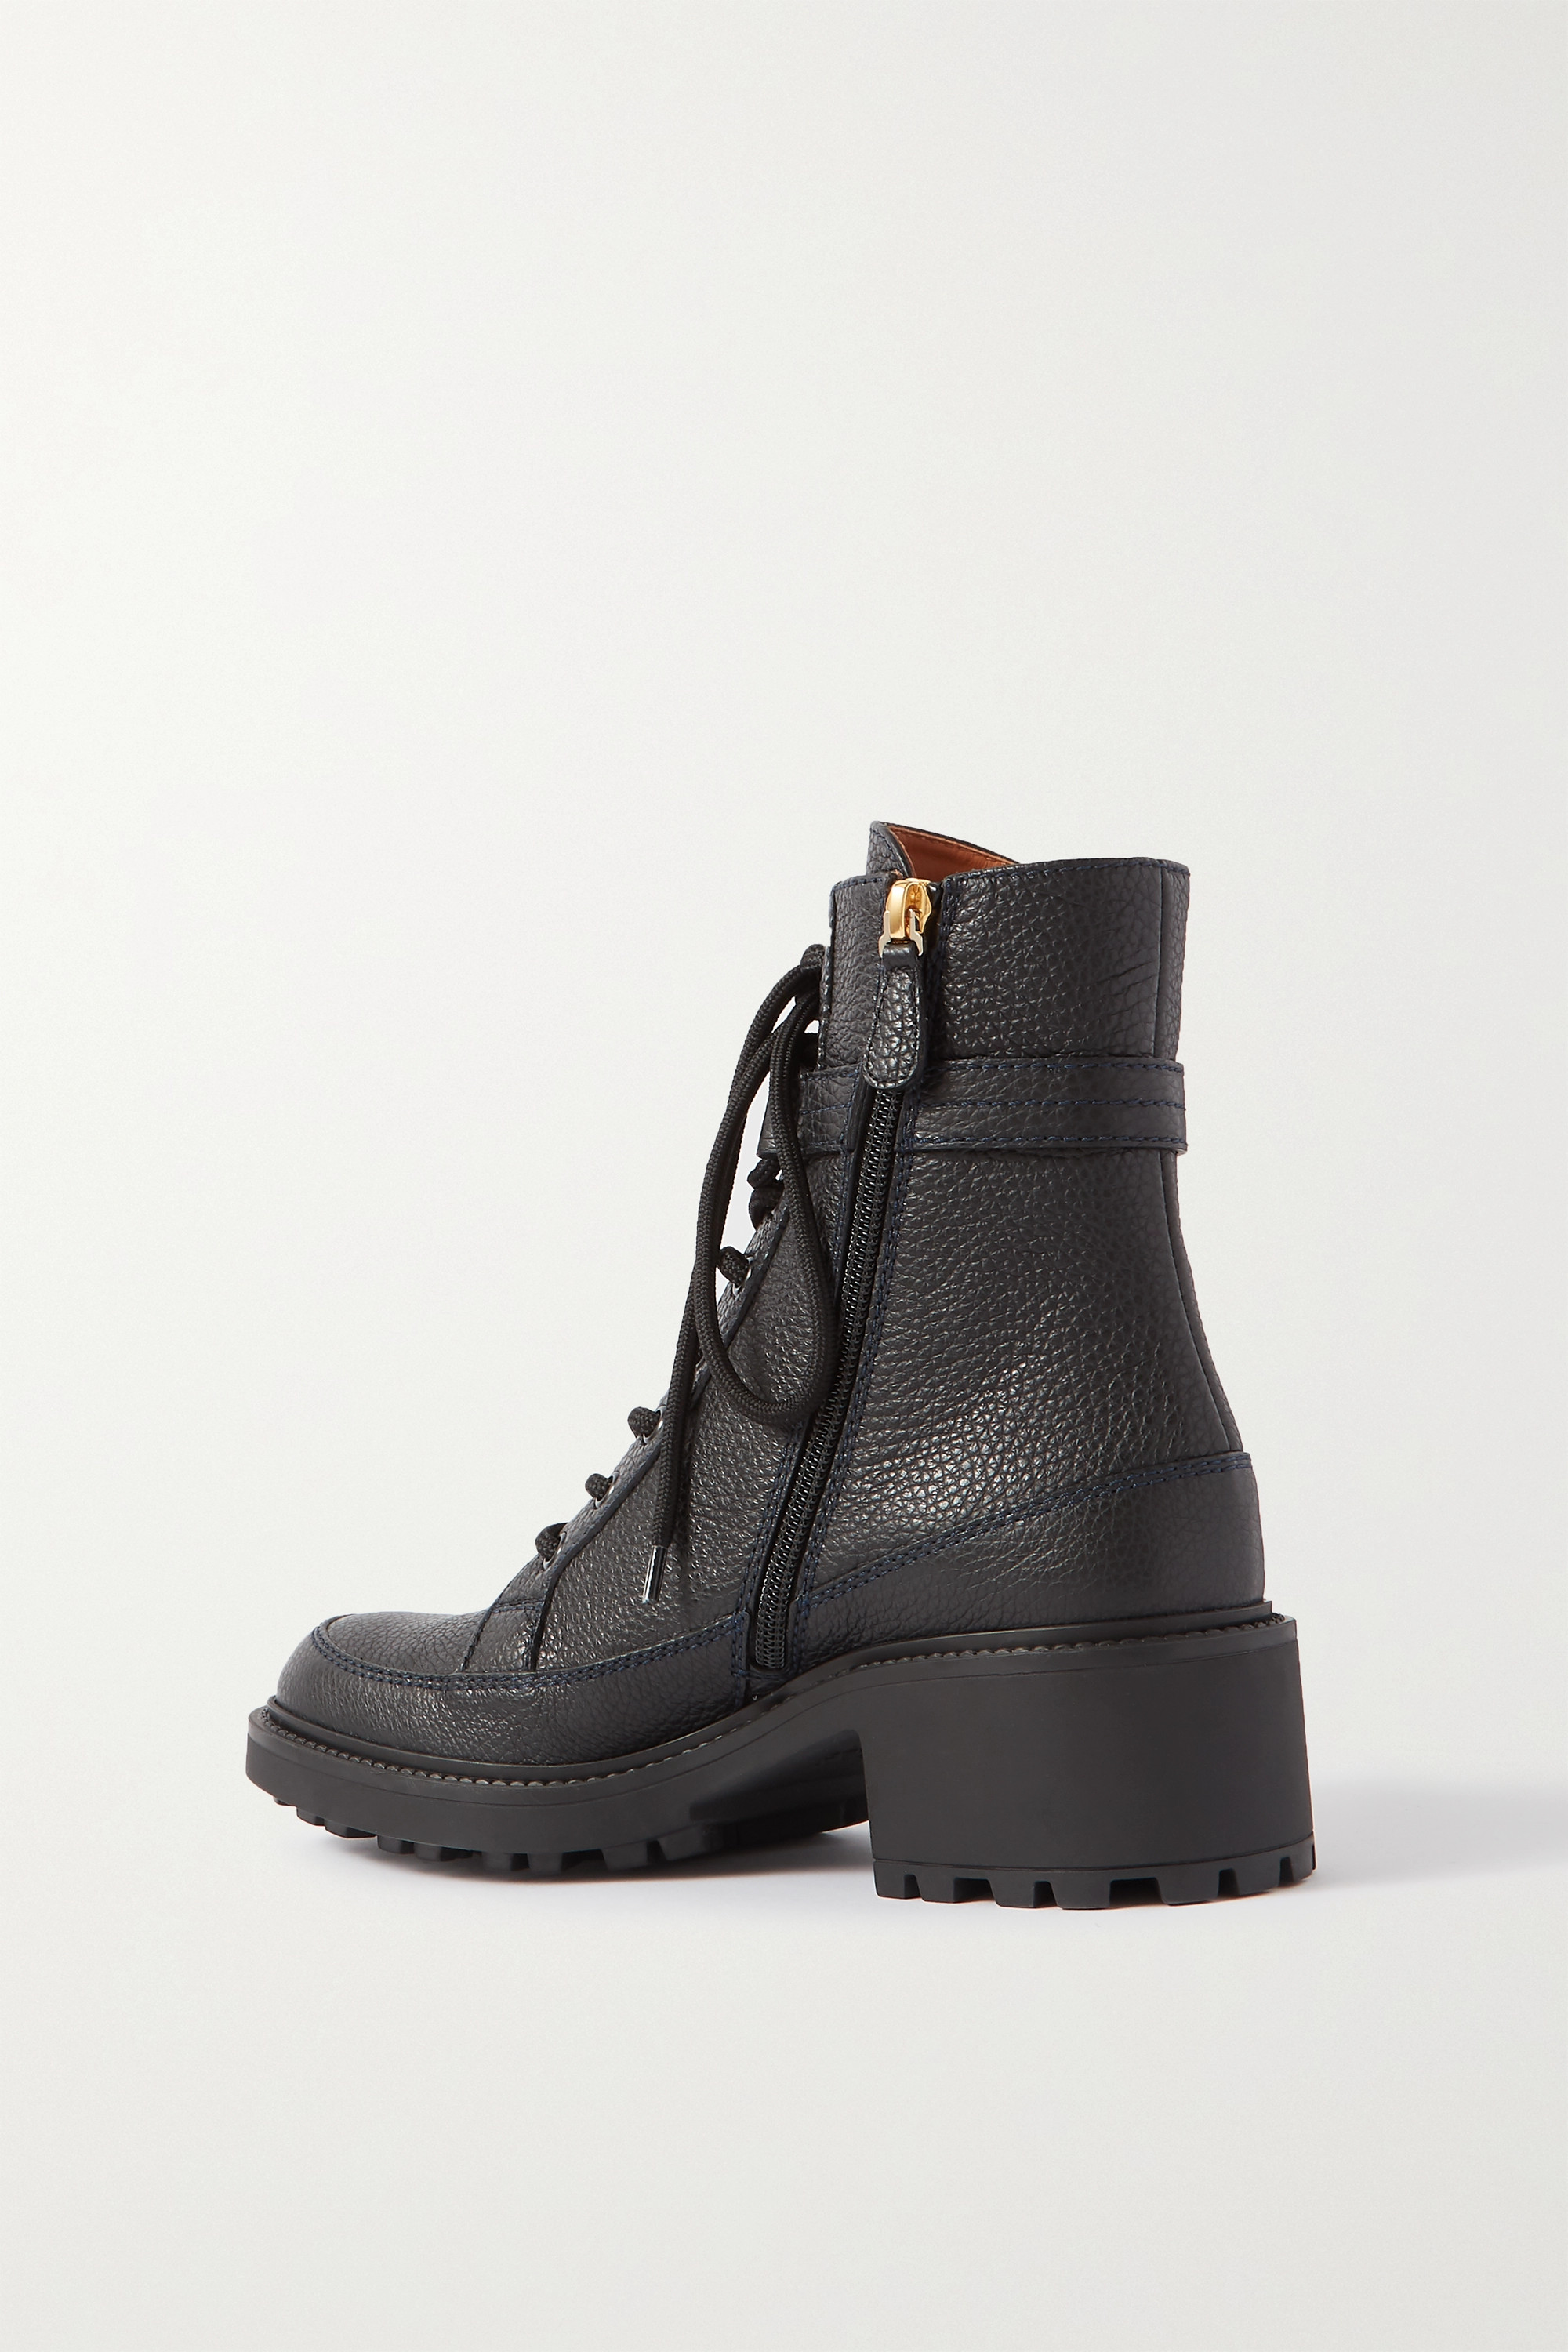 Chloé Darryl embellished textured-leather ankle boots